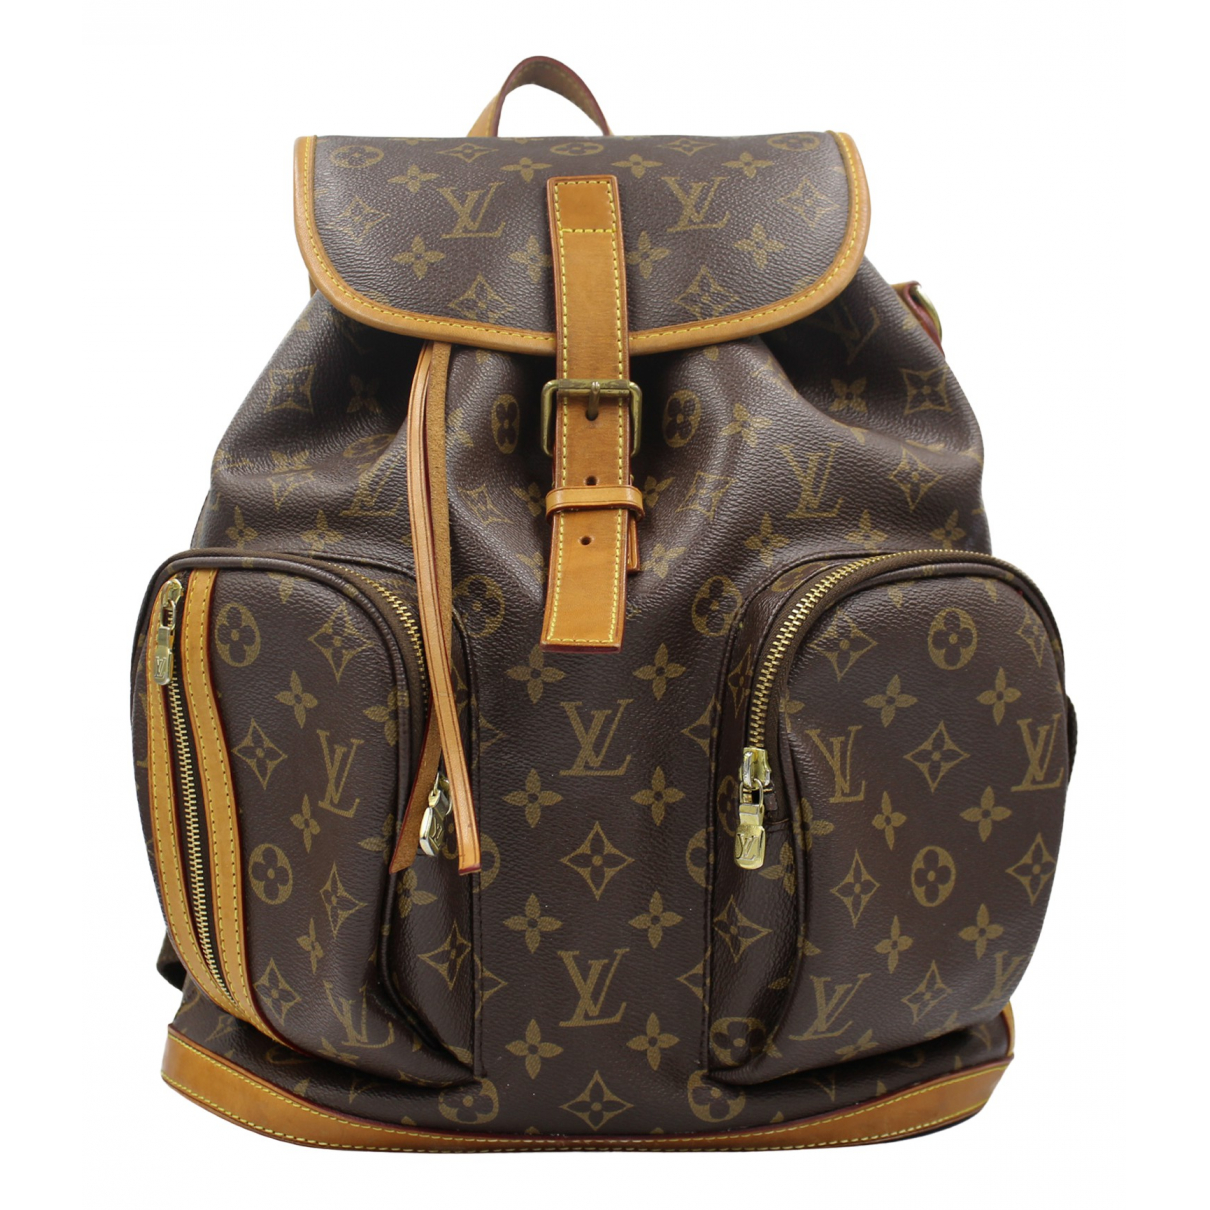 Louis Vuitton - Sac a dos Bosphore Backpack pour femme en toile - marron